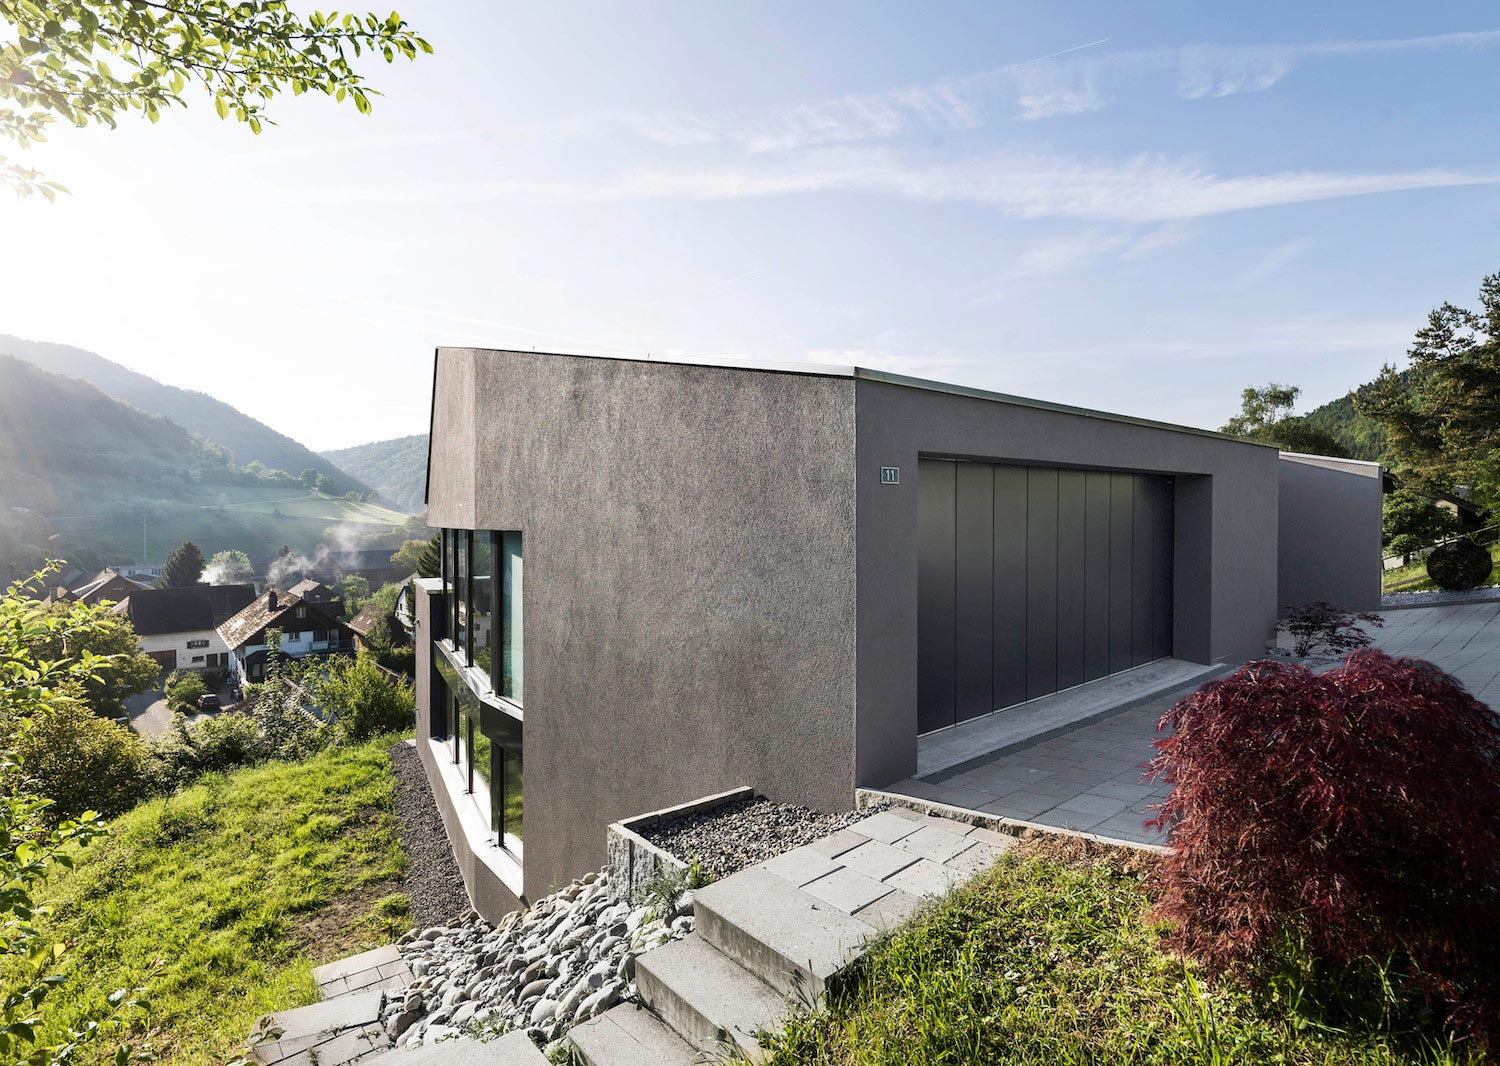 Single family house built on a steep slope that leads to for House build